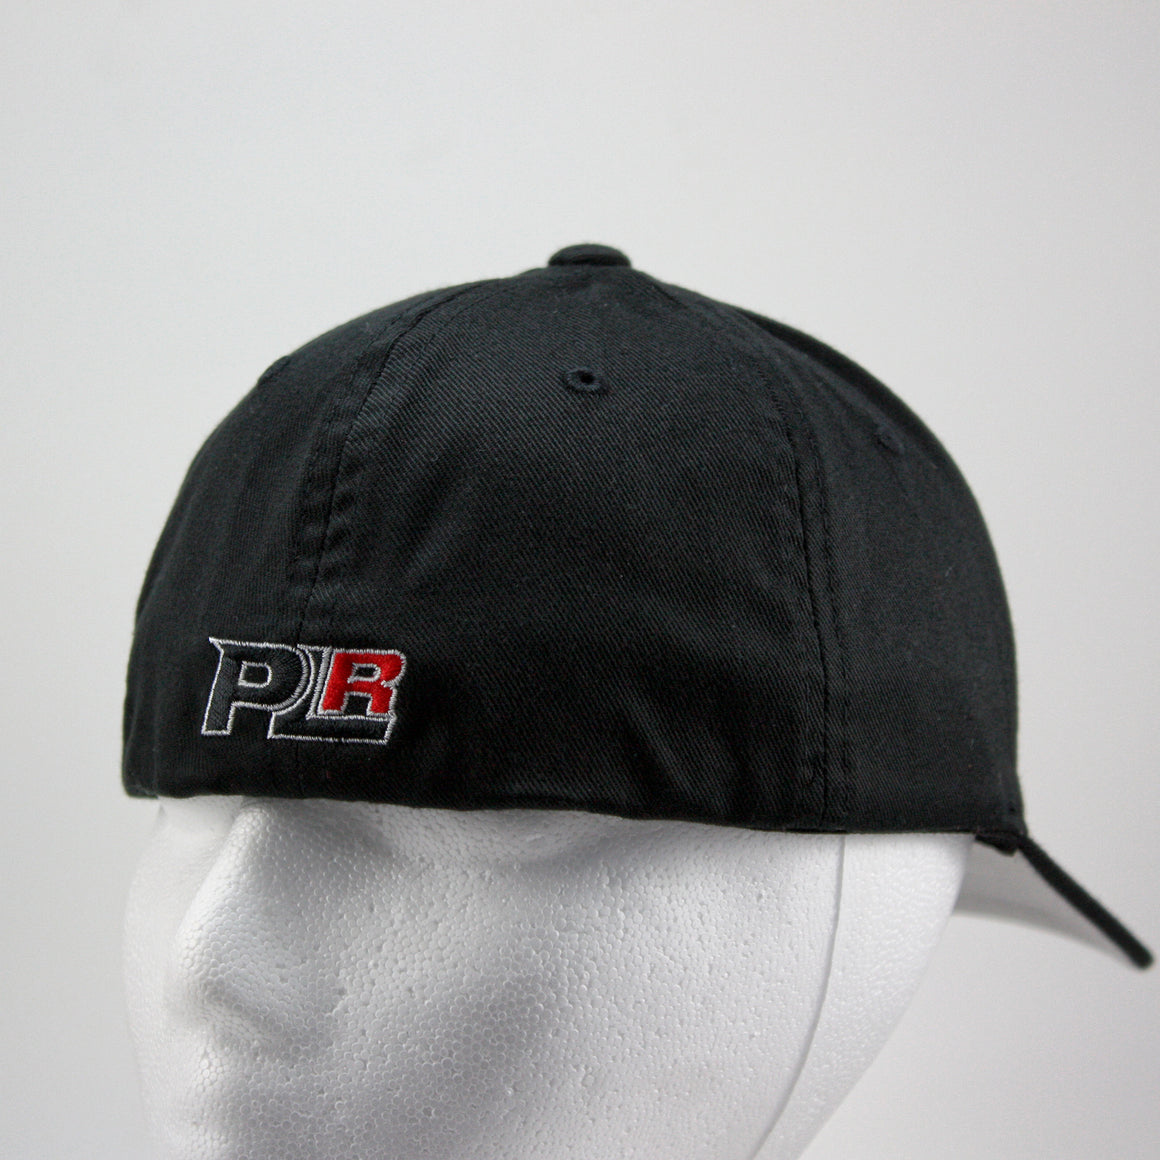 PLR FLEXFIT HAT  - Pro Line Racing - 5